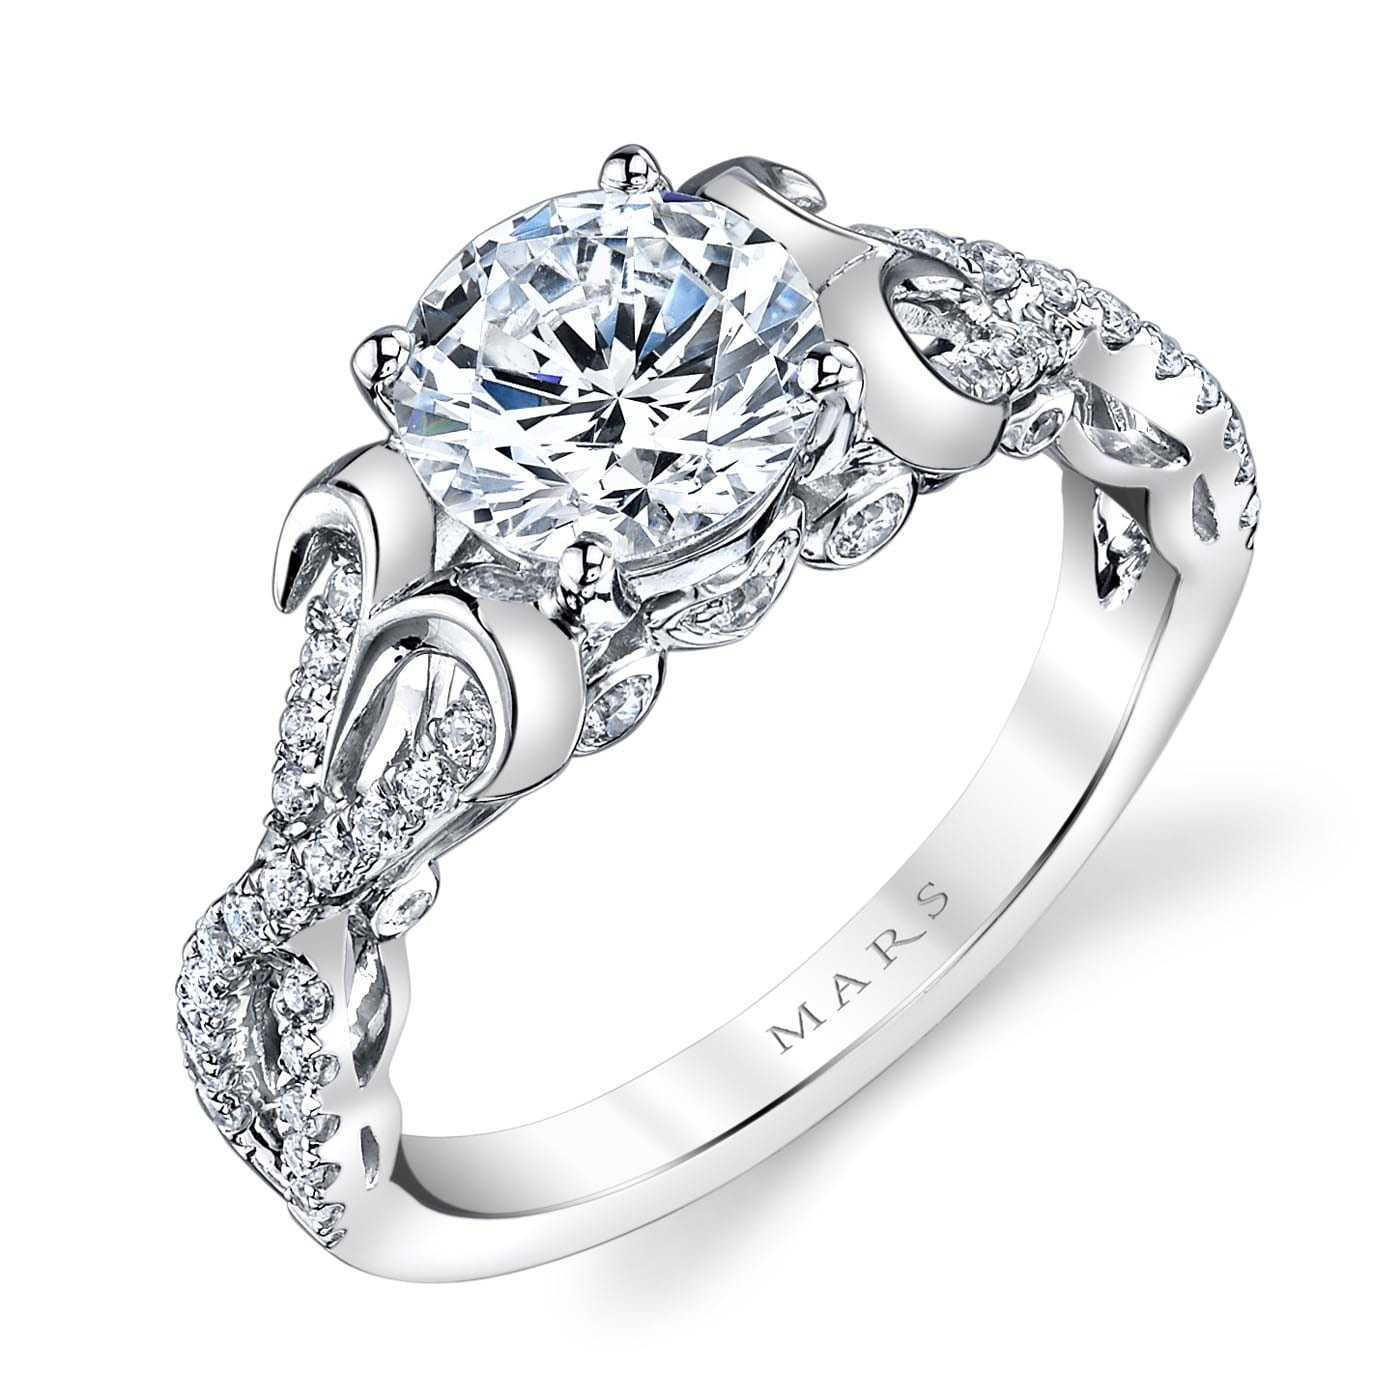 Infinity Engagement RingStyle #: MARS 25737